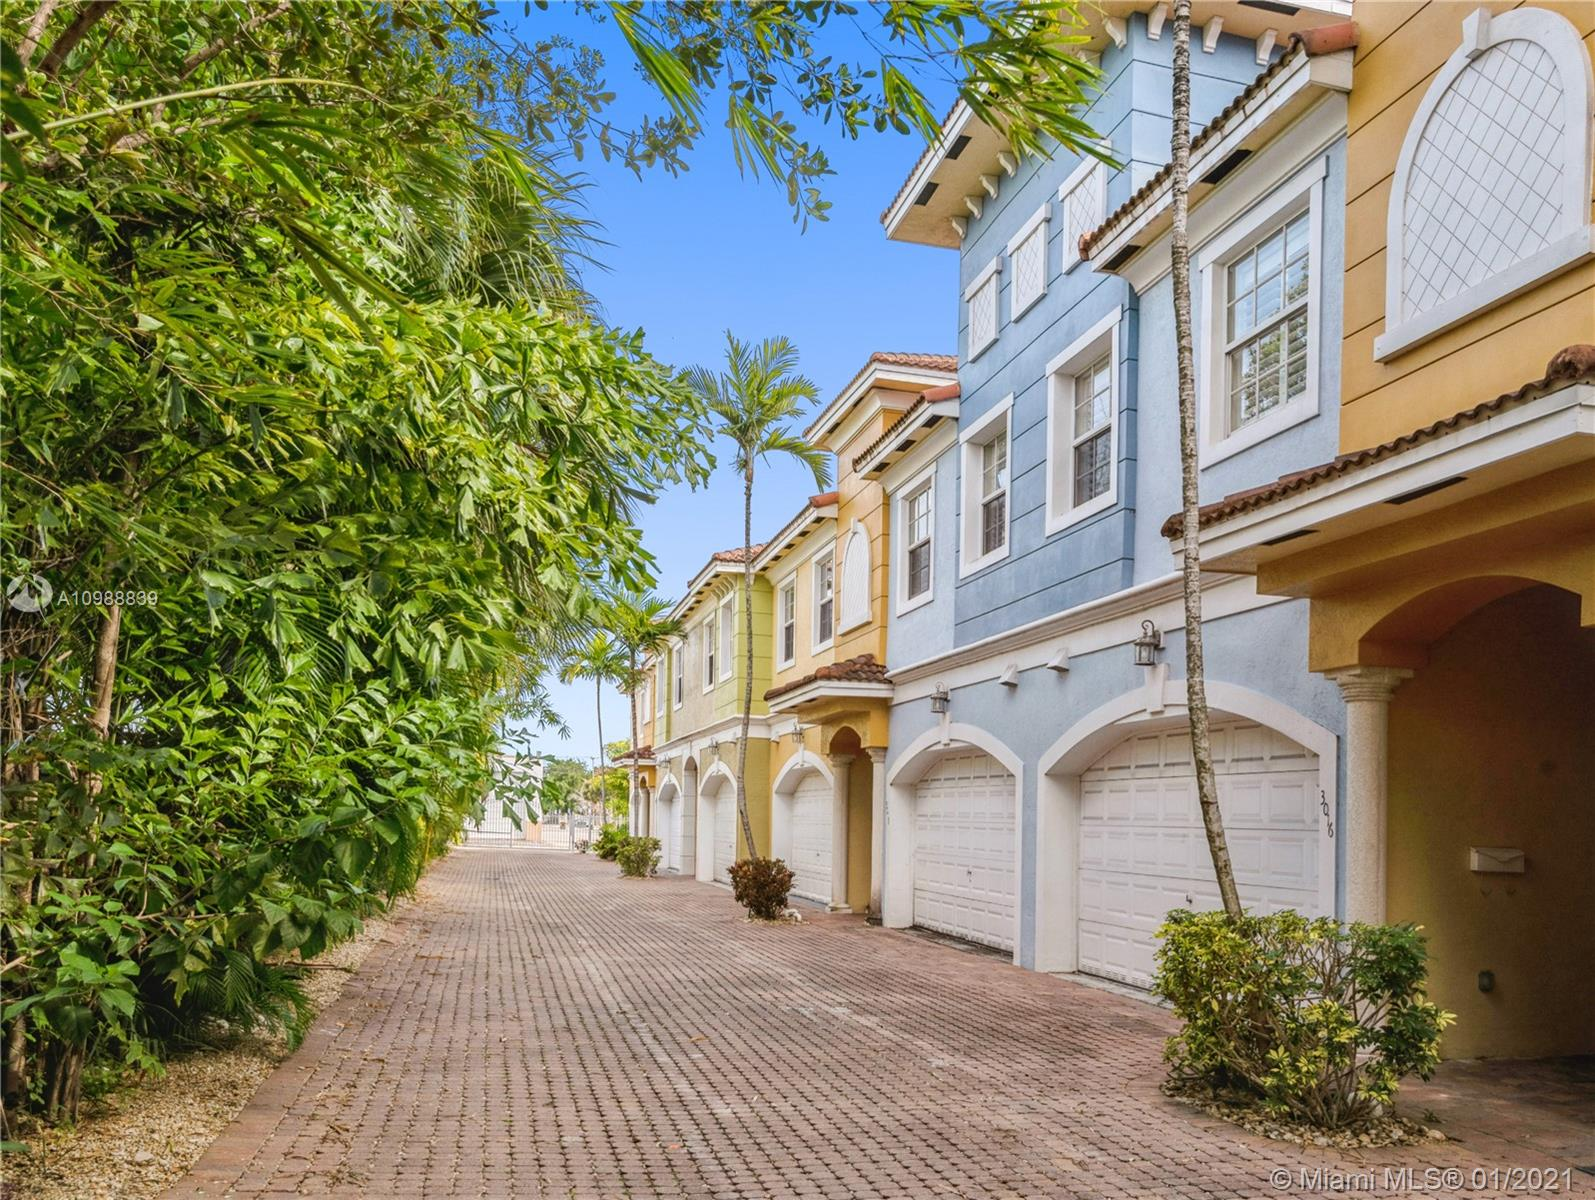 Great value in this Wilton Manors 3BR / 2.5 Bath townhome with impact windows and doors, 10 ft  ceilings and 2 car garage!  First floor includes modern open kitchen, half bath, large dining and living areas with French doors opening to lovely fenced garden/patio.  Large upstairs Master Suite includes two walk-in closets, a private balcony, and tray ceiling.  Master bath has been completely renovated with custom cabinetry, dual sinks, soaking tub, and oversized glass enclosed shower.  The 2nd and 3rd upstairs bedrooms share a guest bath.  Laundry is conveniently located on the 2nd floor of the residence.  Only 12 townhomes in the complex.  Low maintenance.